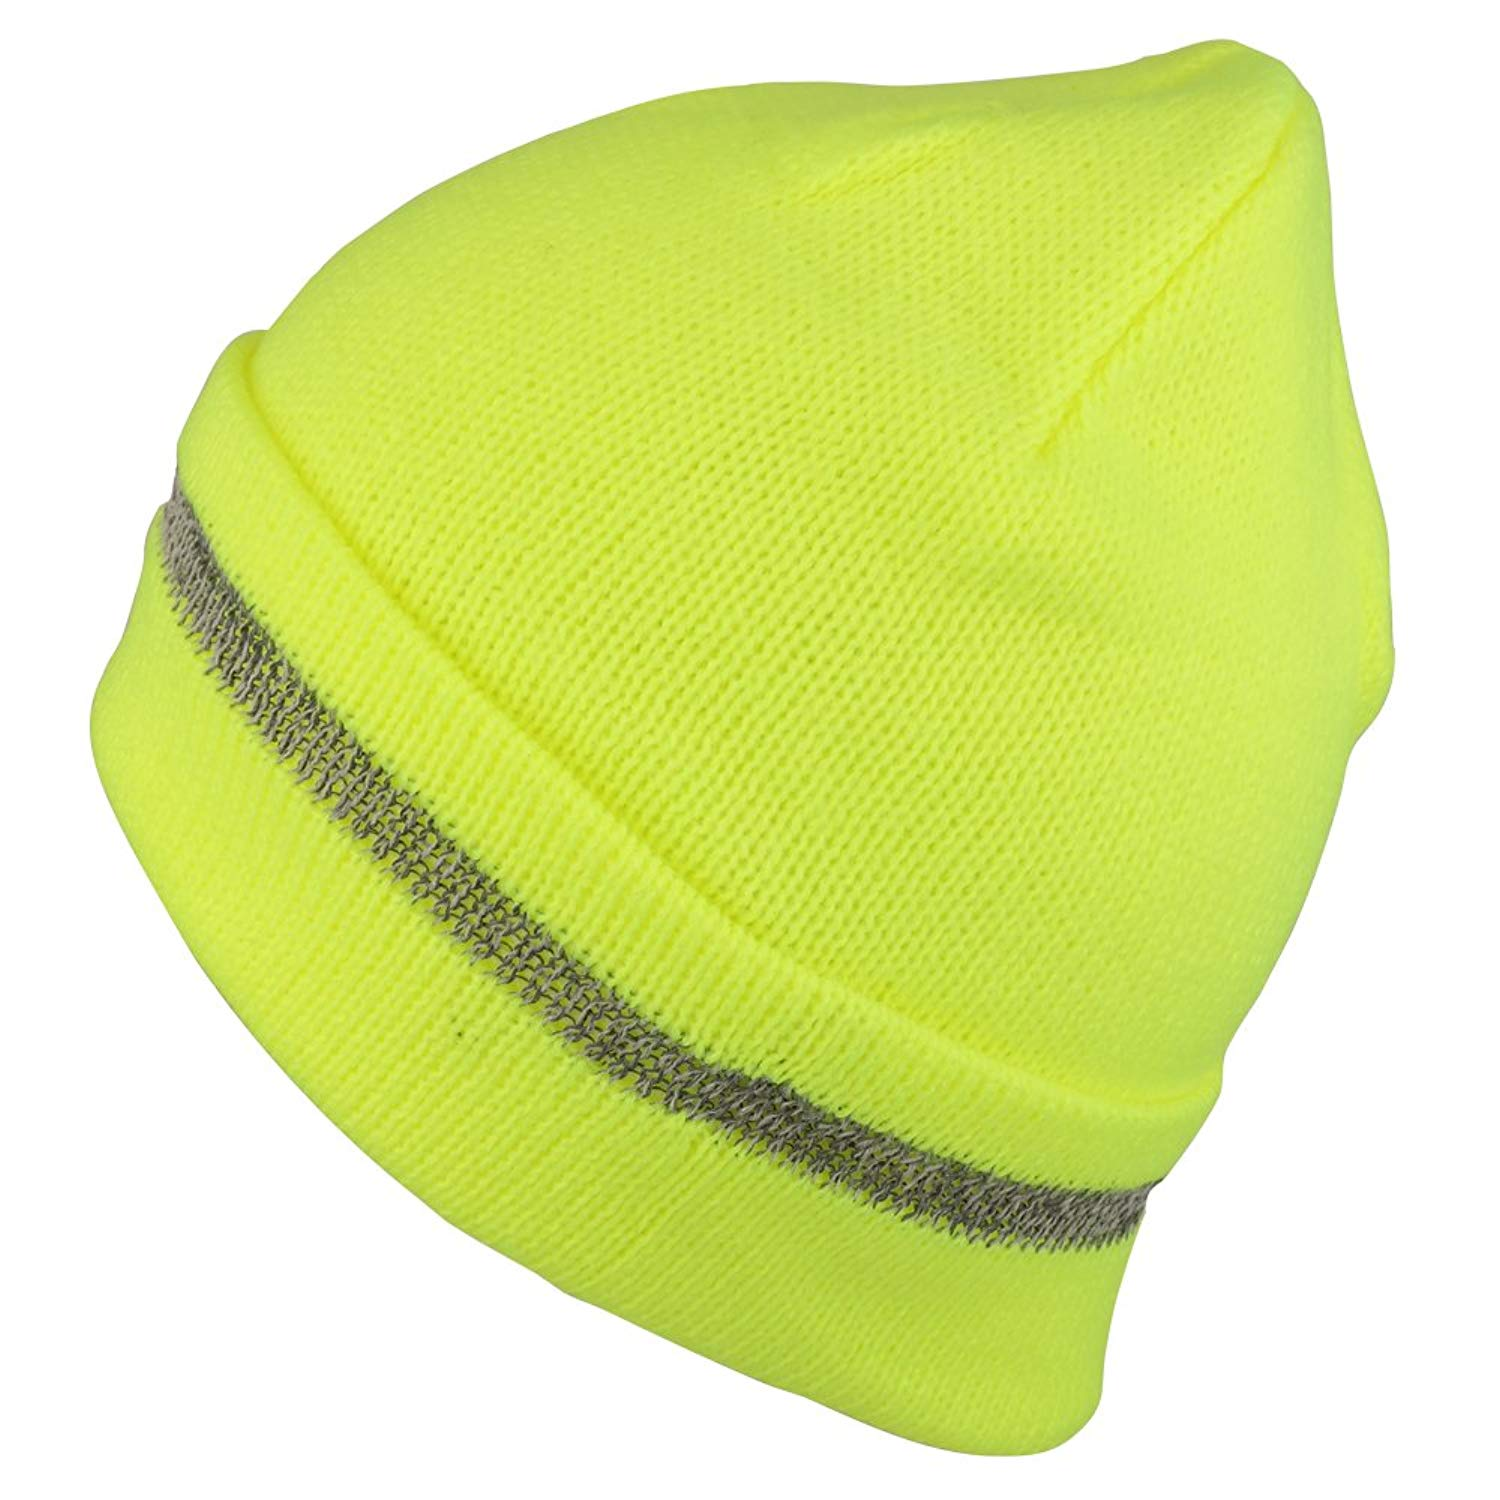 b668a219ac1fc Get Quotations · Trendy Apparel Shop High Visibility Reflective Striped  Long Cuff Knit Beanie Hat